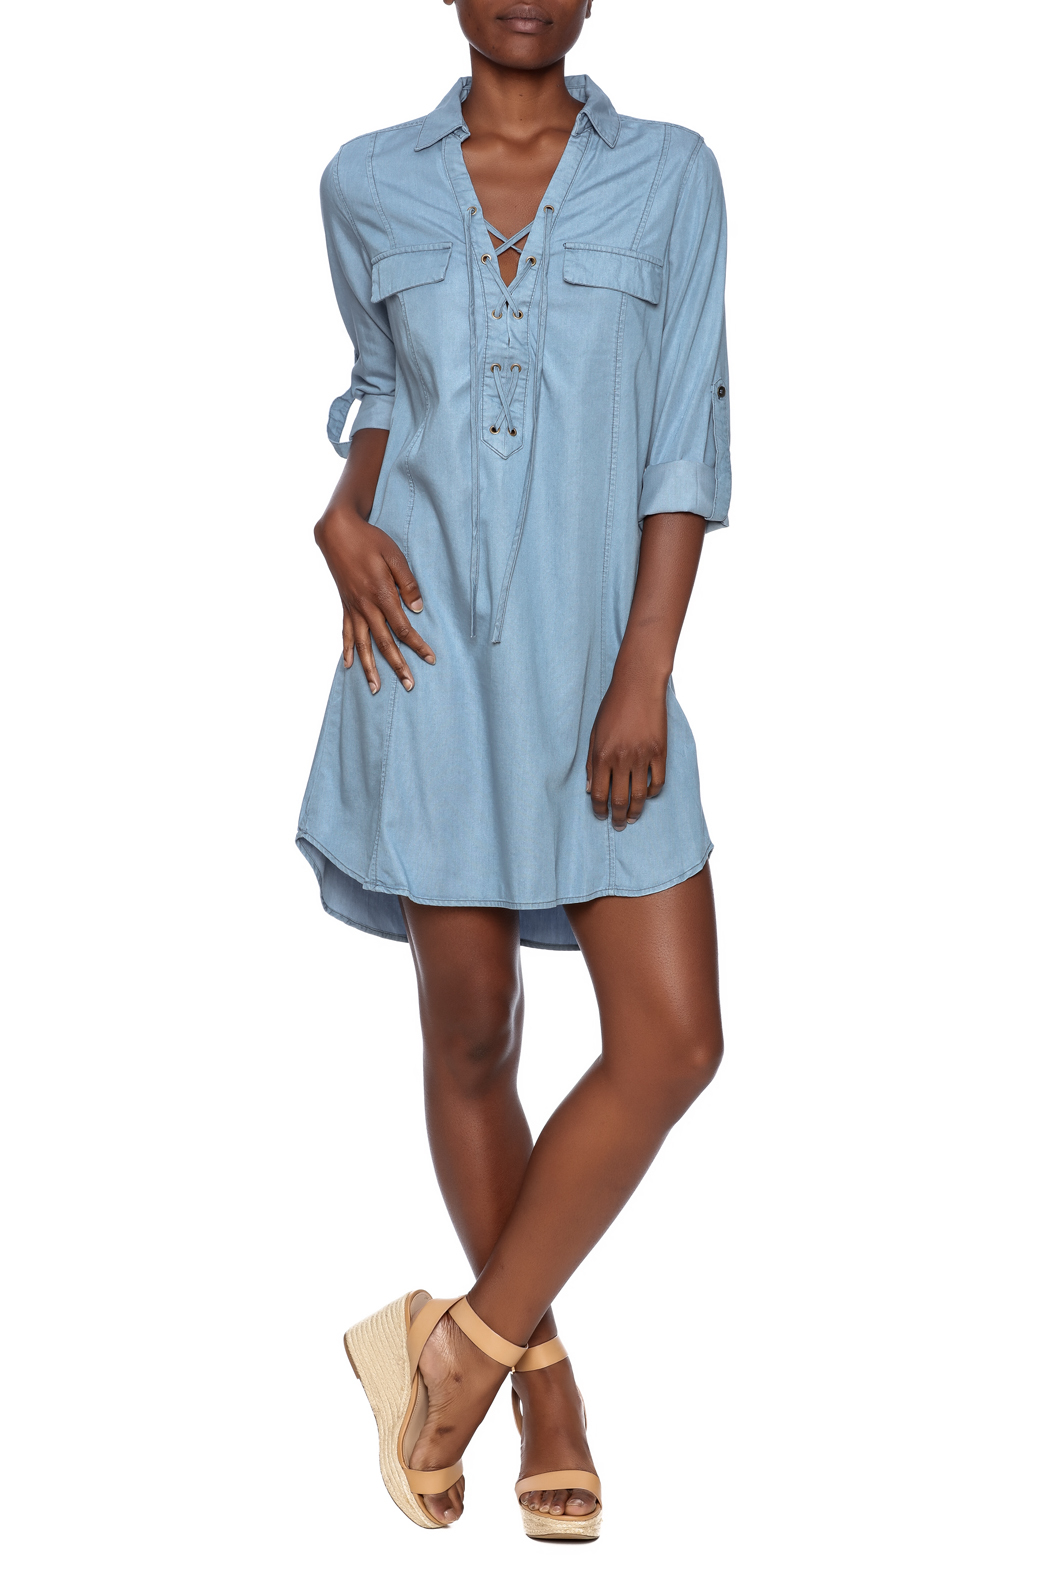 dress forum Lace Up Denim Dress from New York City by Dor L\'Dor ...